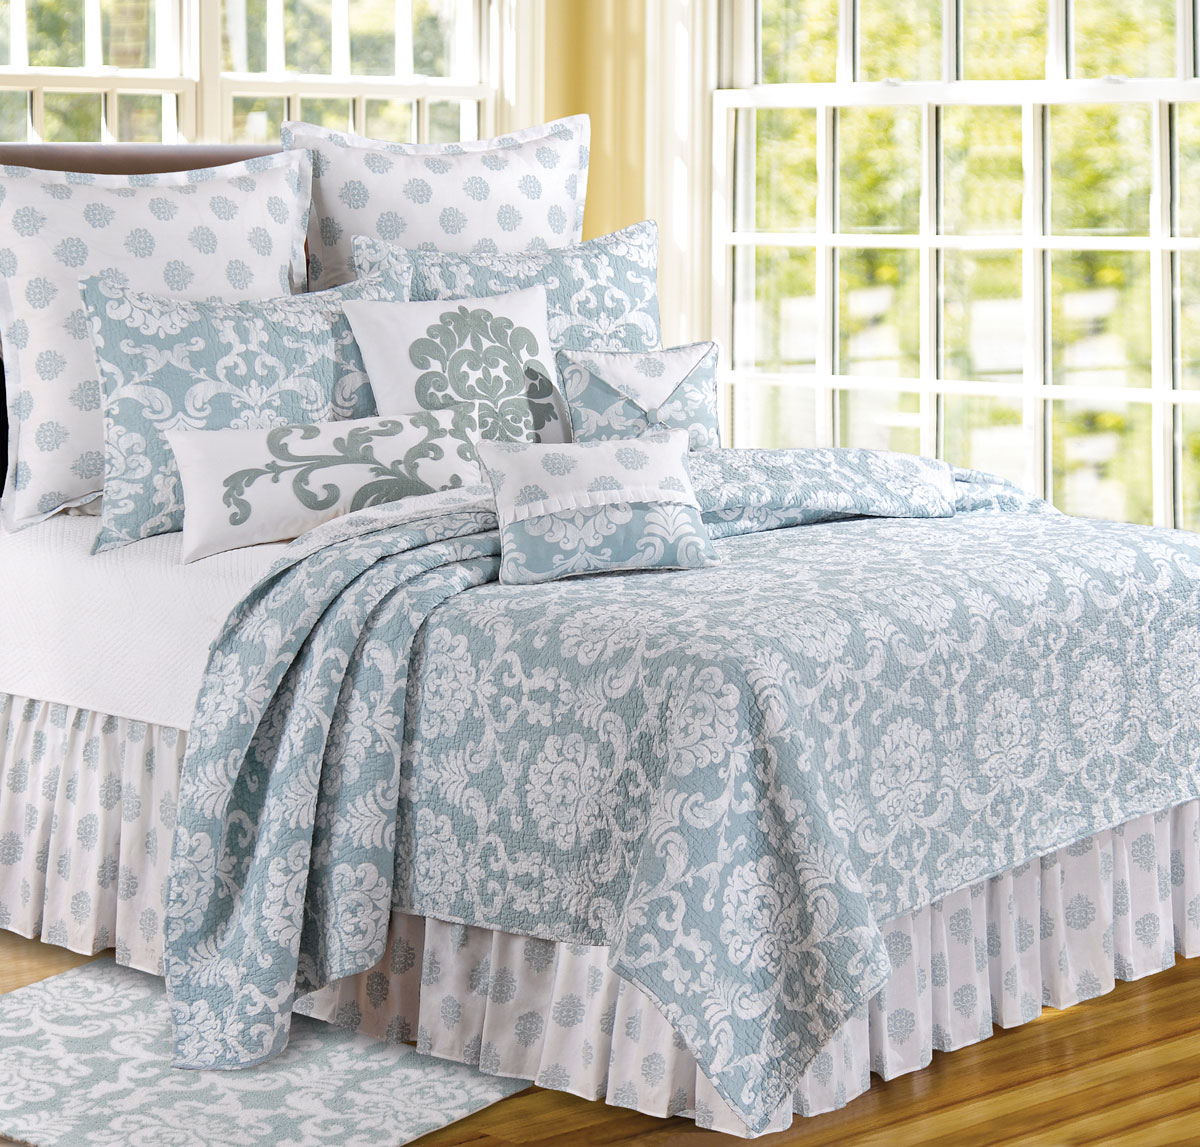 Providence Bedroom Furniture Providence Chambray By Cf Quilts Beddingsuperstorecom